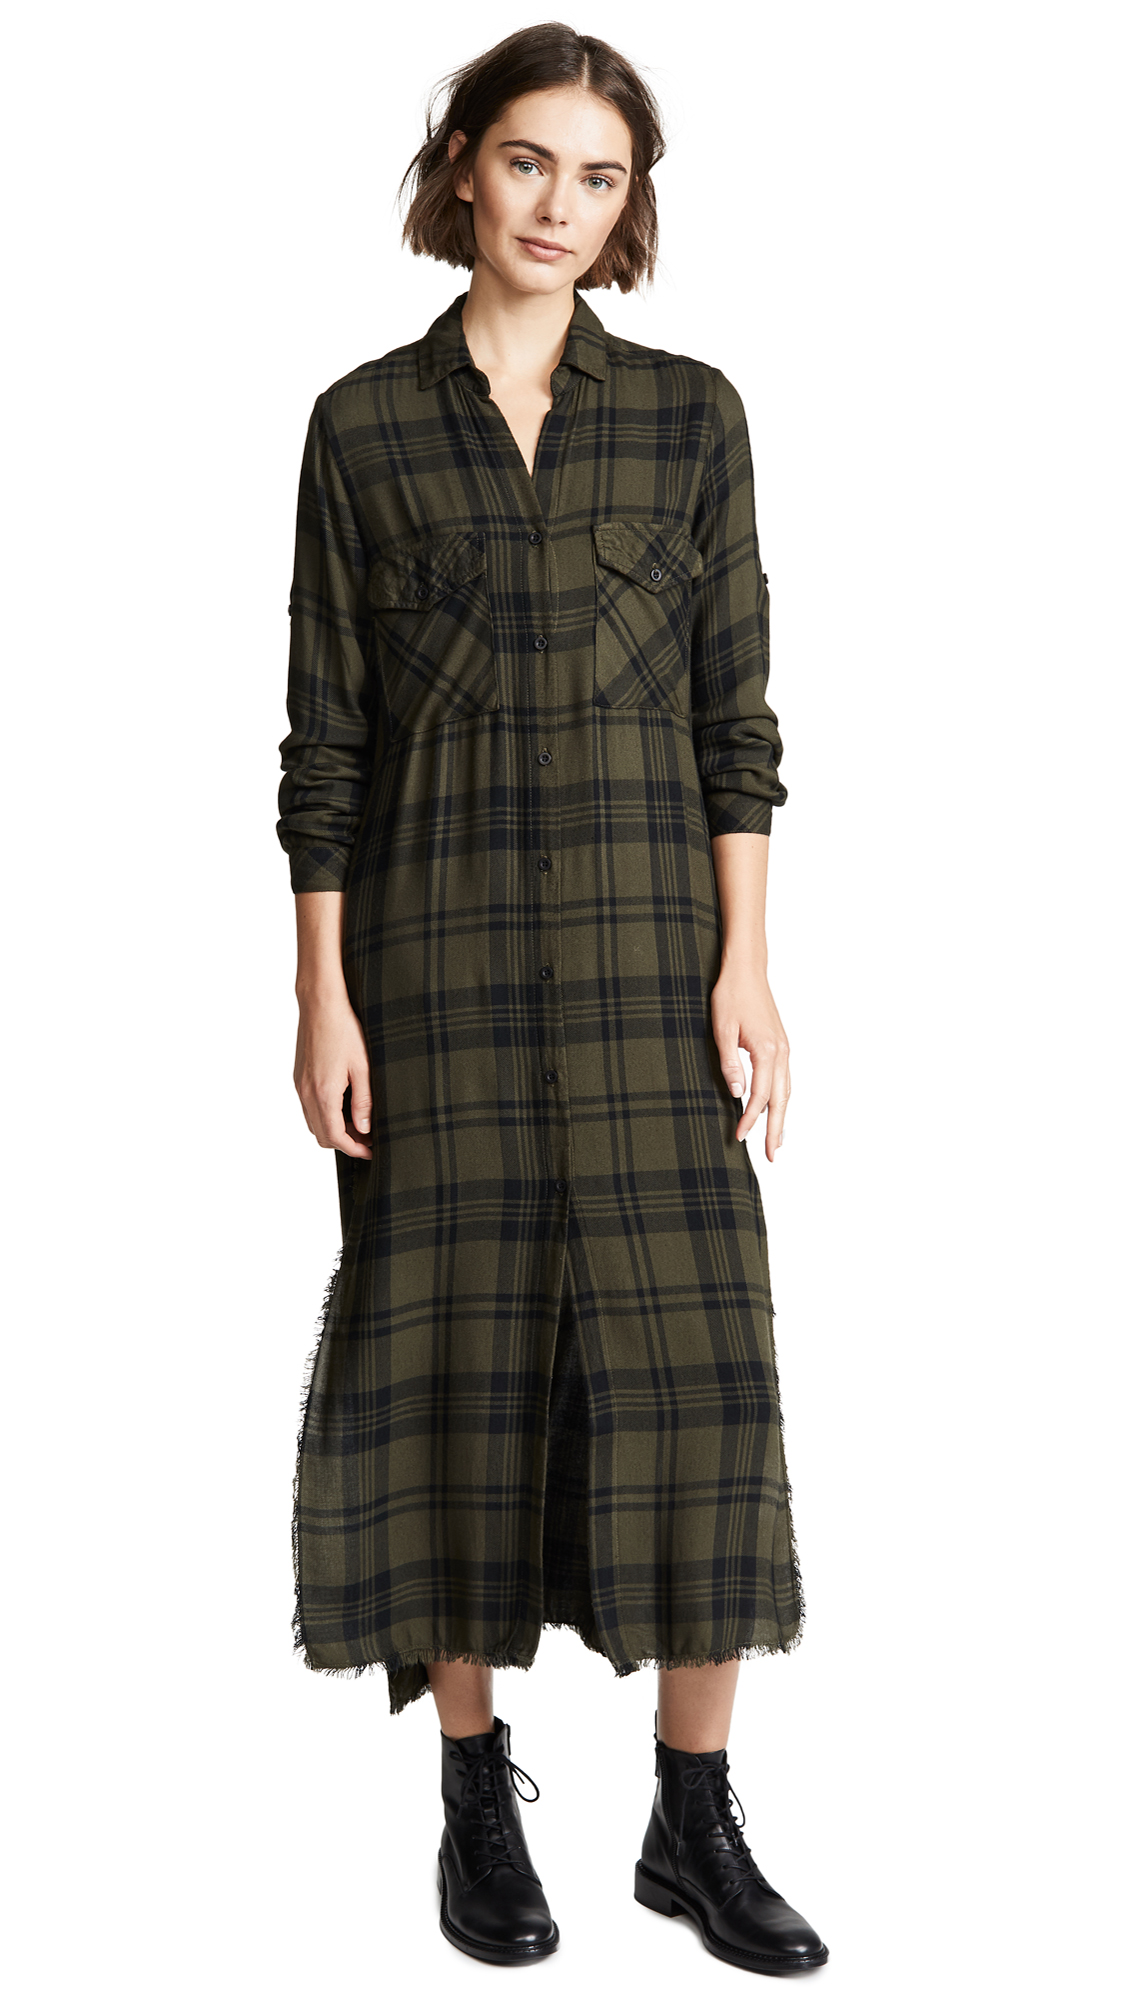 Bella Dahl Maxi Shirt Dress - Army Olive